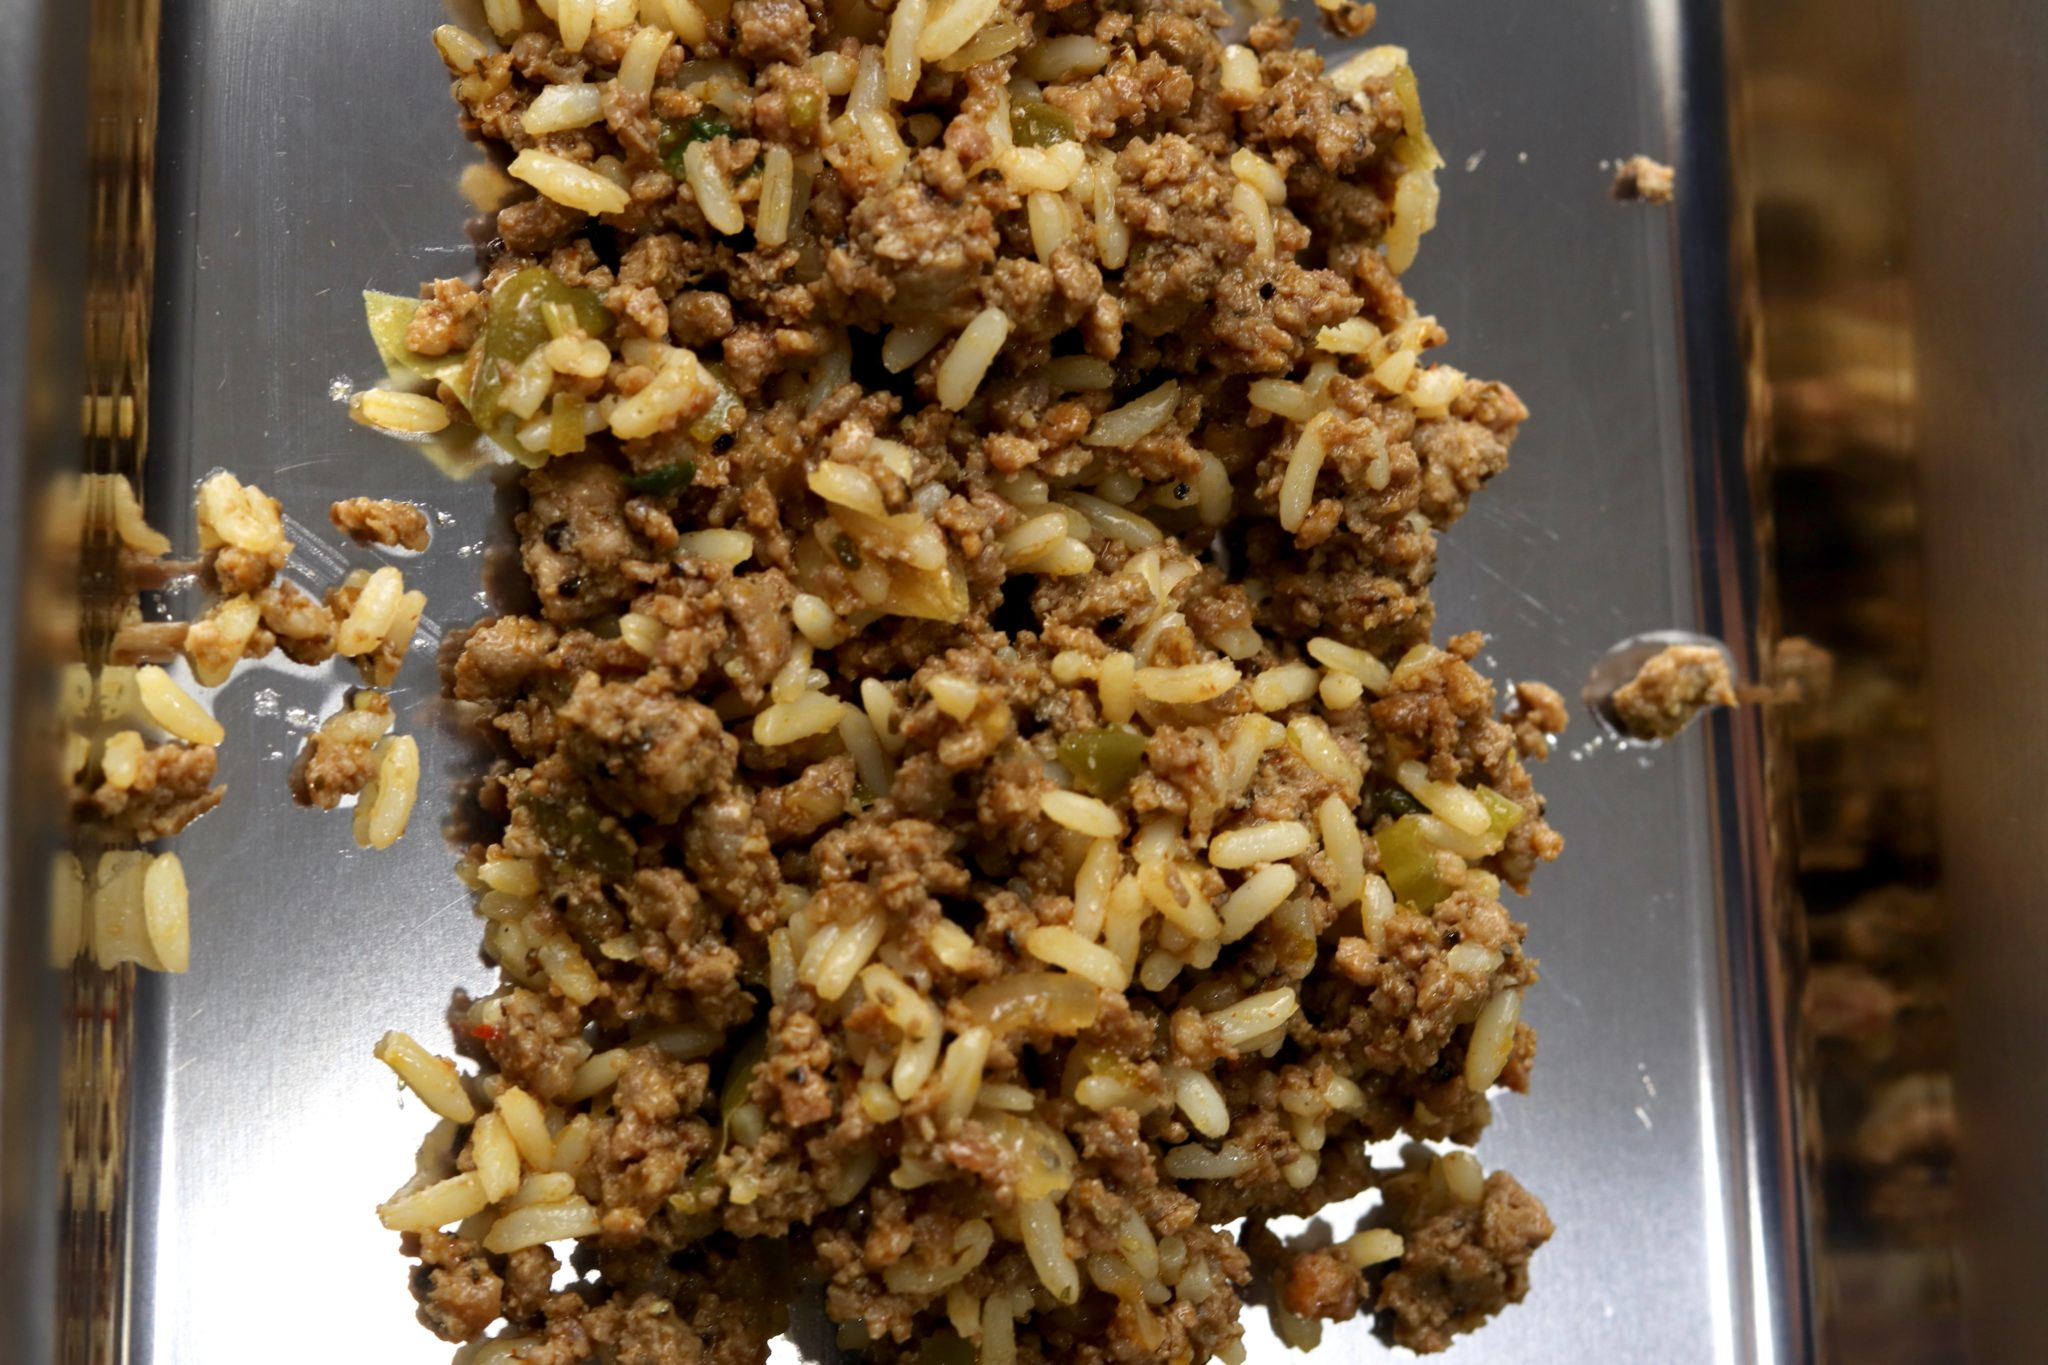 Making sausage with rice and ground pork